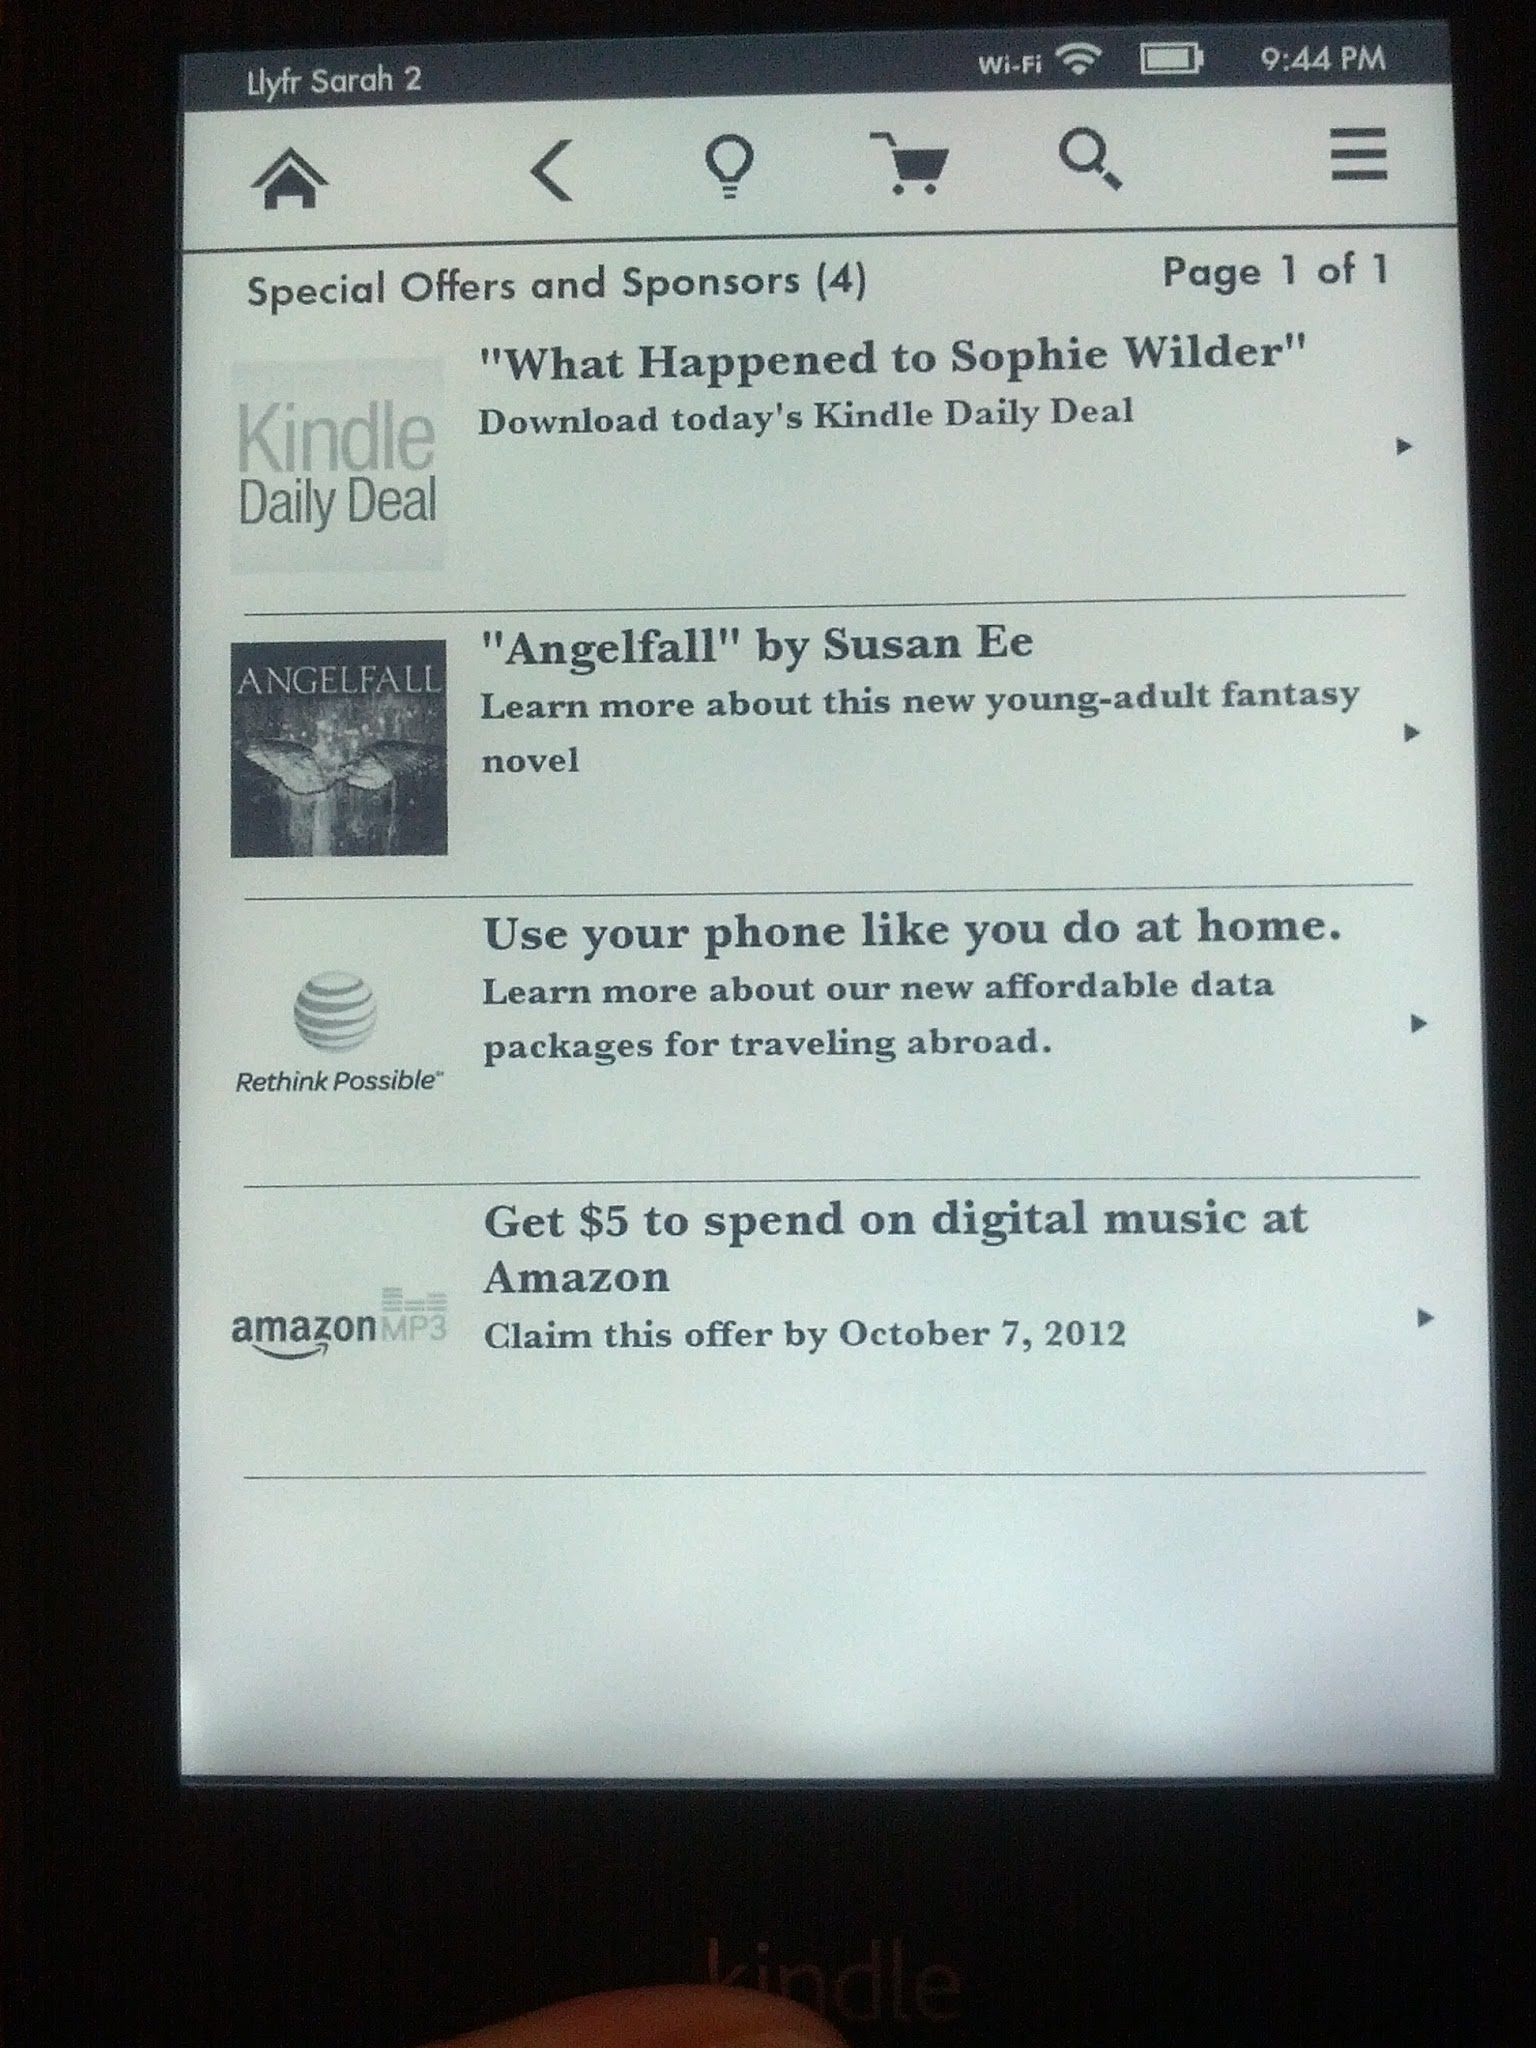 The Kindle Special Offers Page